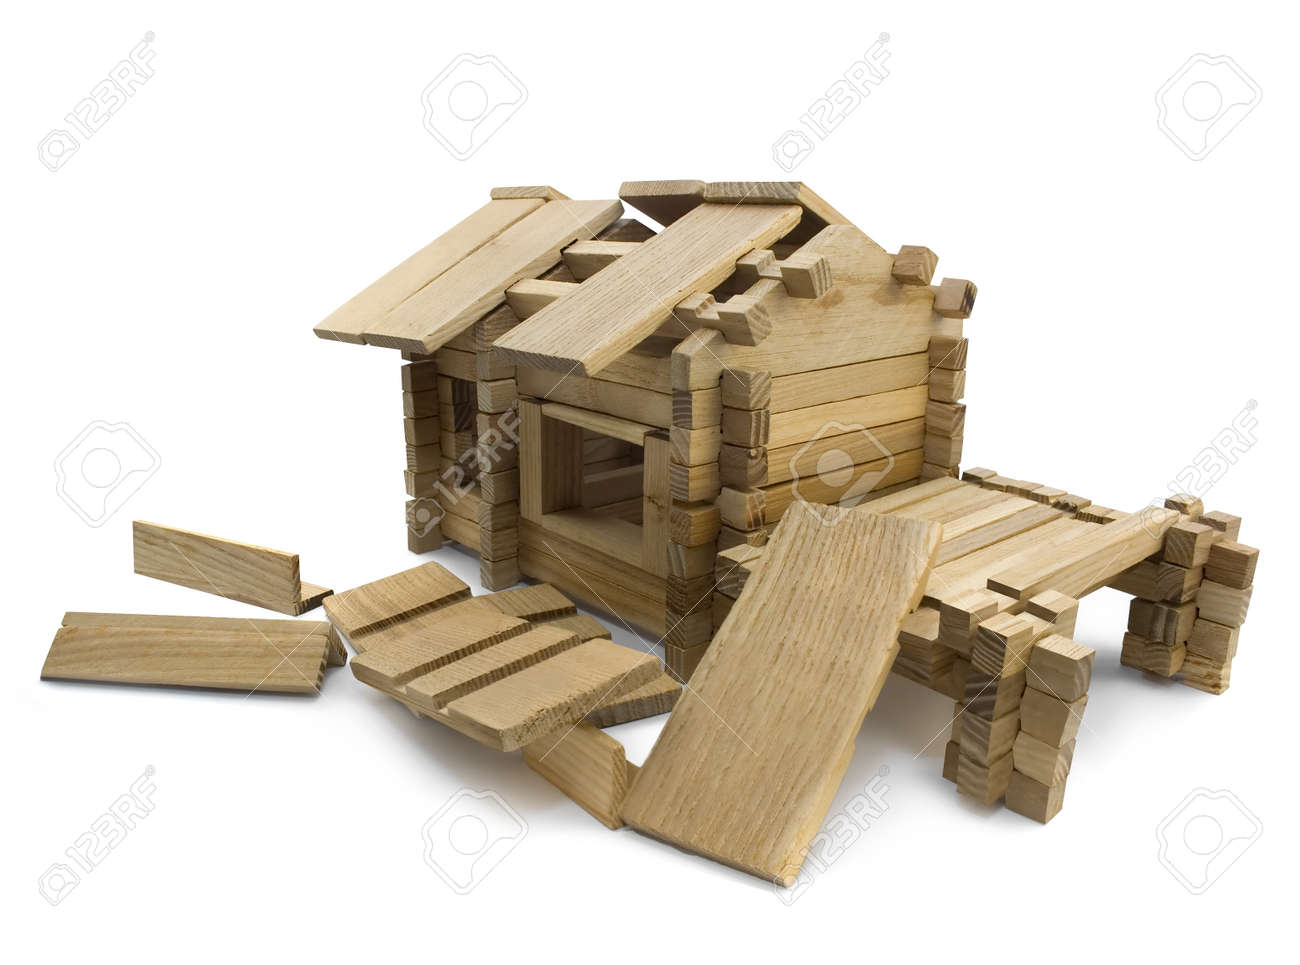 Broken house  Isolated wooden broken toy house view